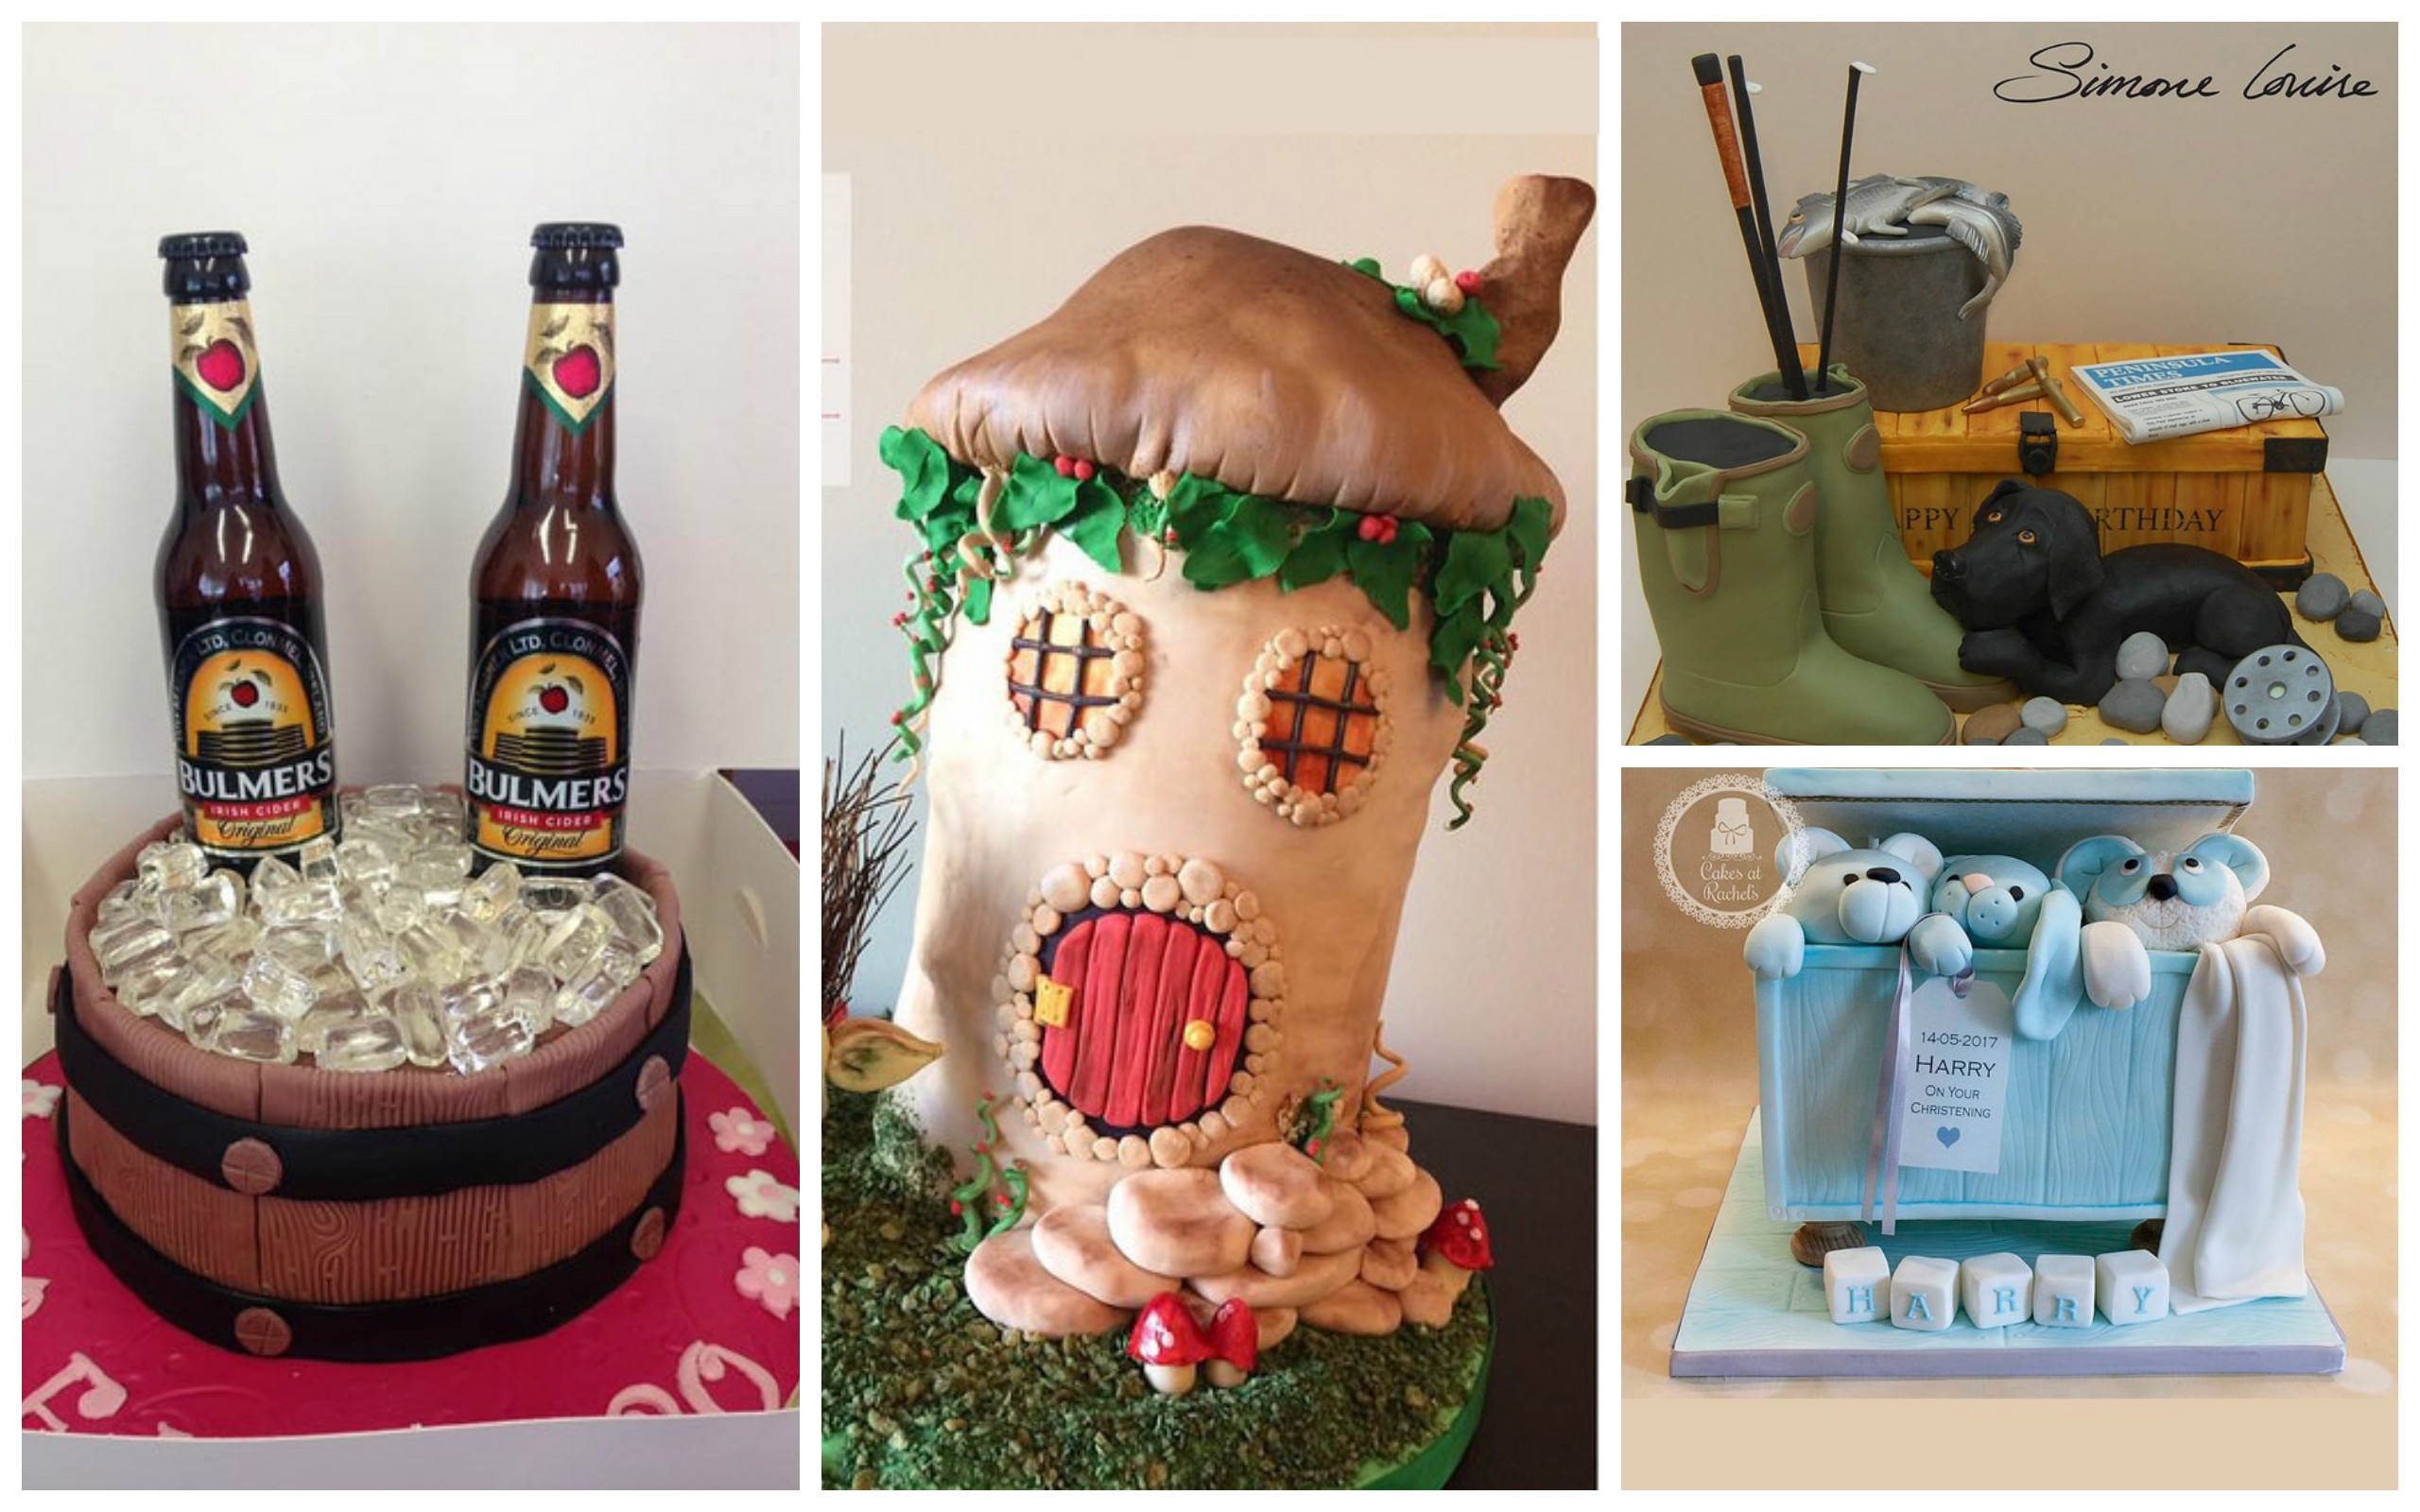 Cake Design Competition Show : Competition: Designer of the World s Most Incredible Cake